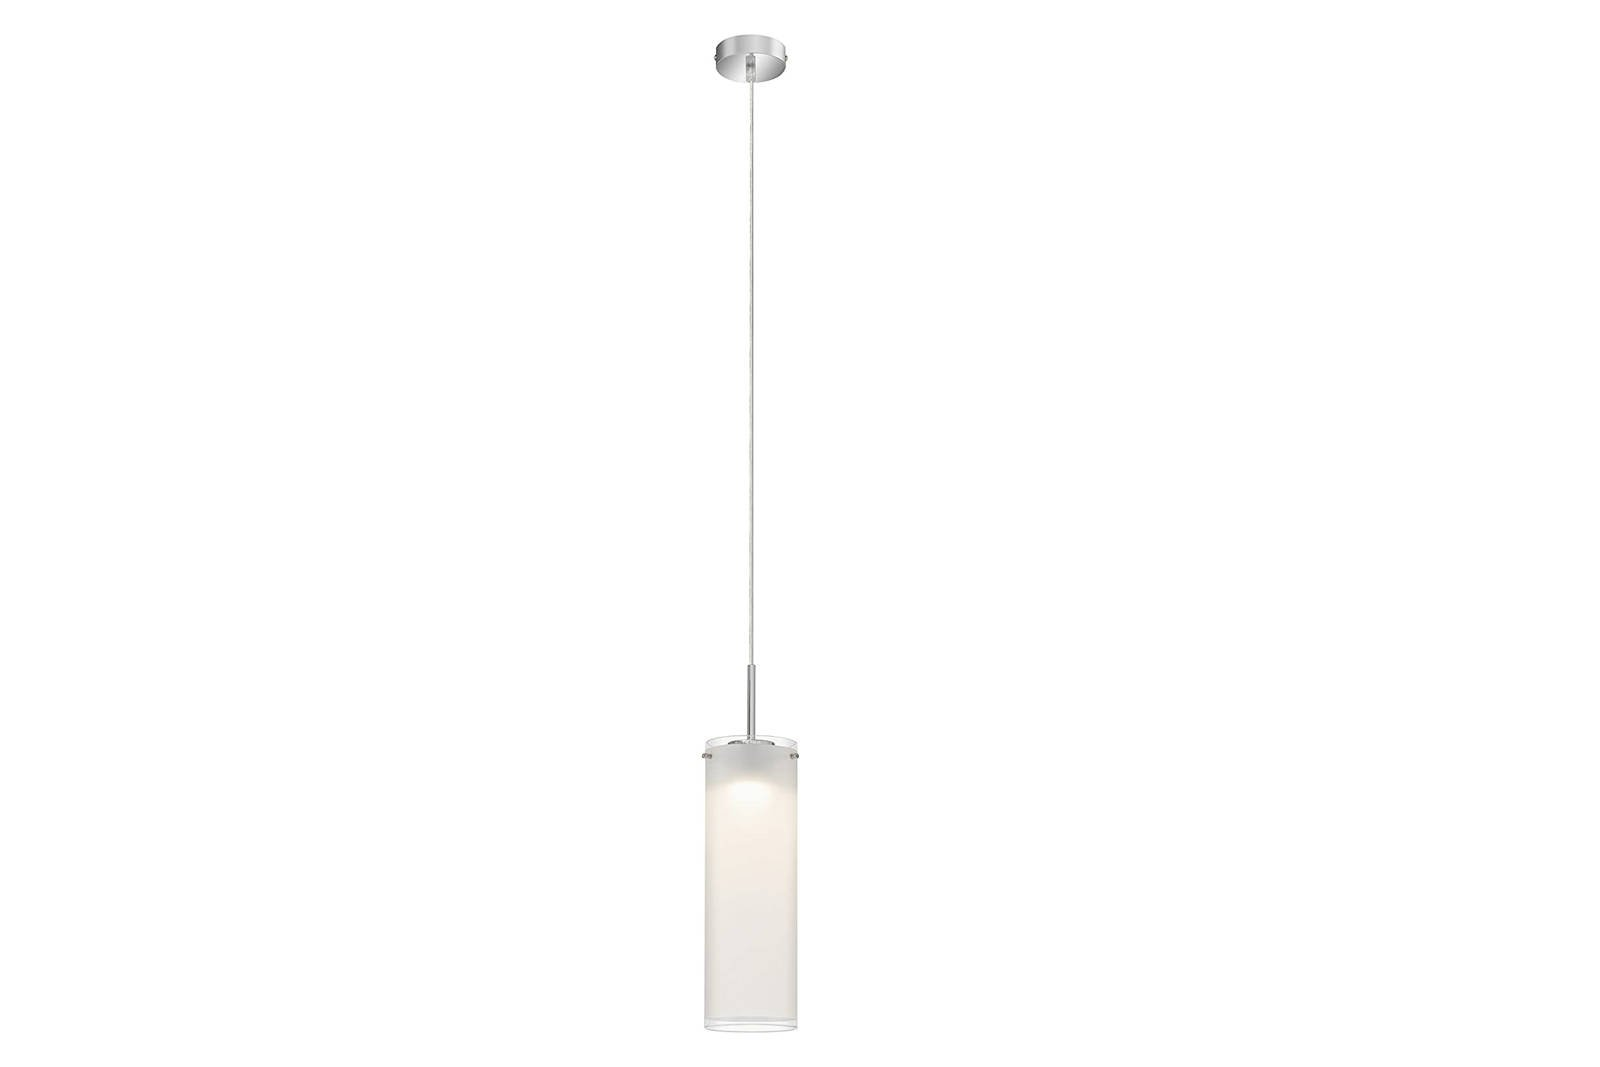 Briloner Ceiling Light 4350-018 5W LED Dimmable 400 lm Metal 5 W Chrome